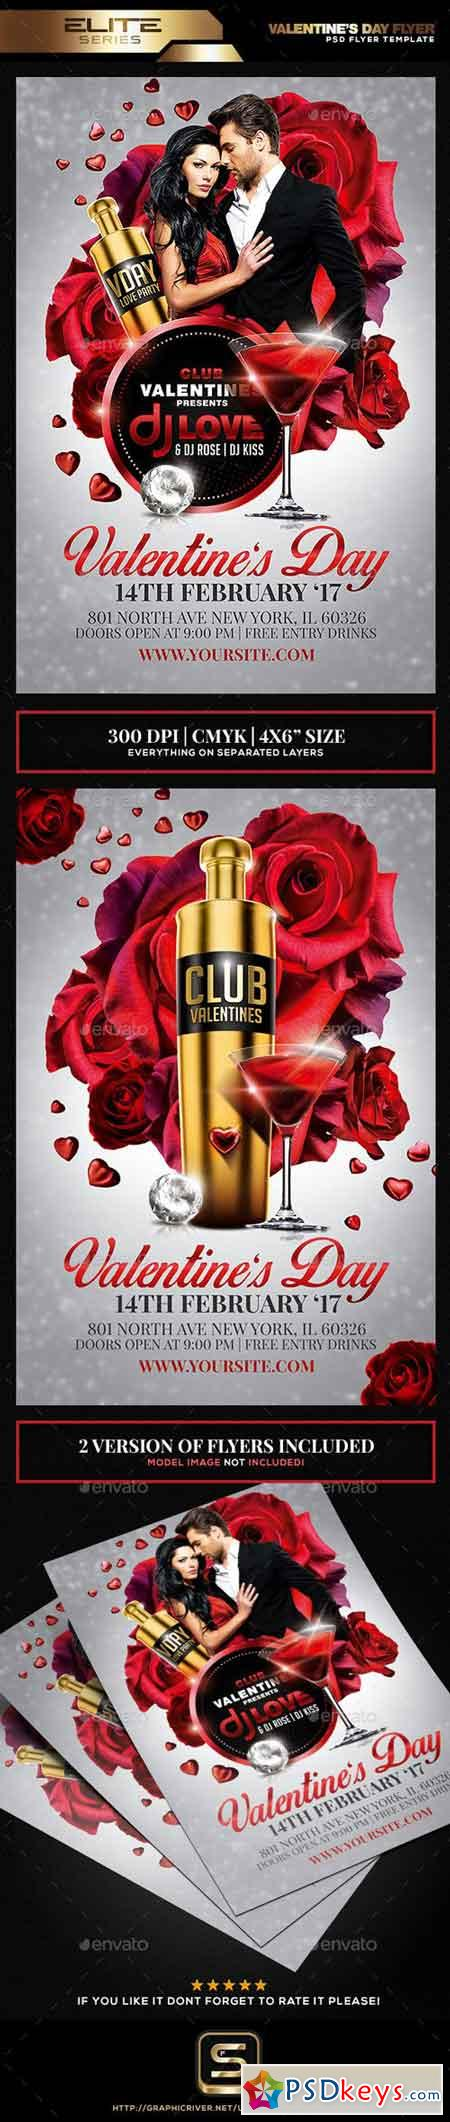 Valentine's Day Flyer Template 19270355